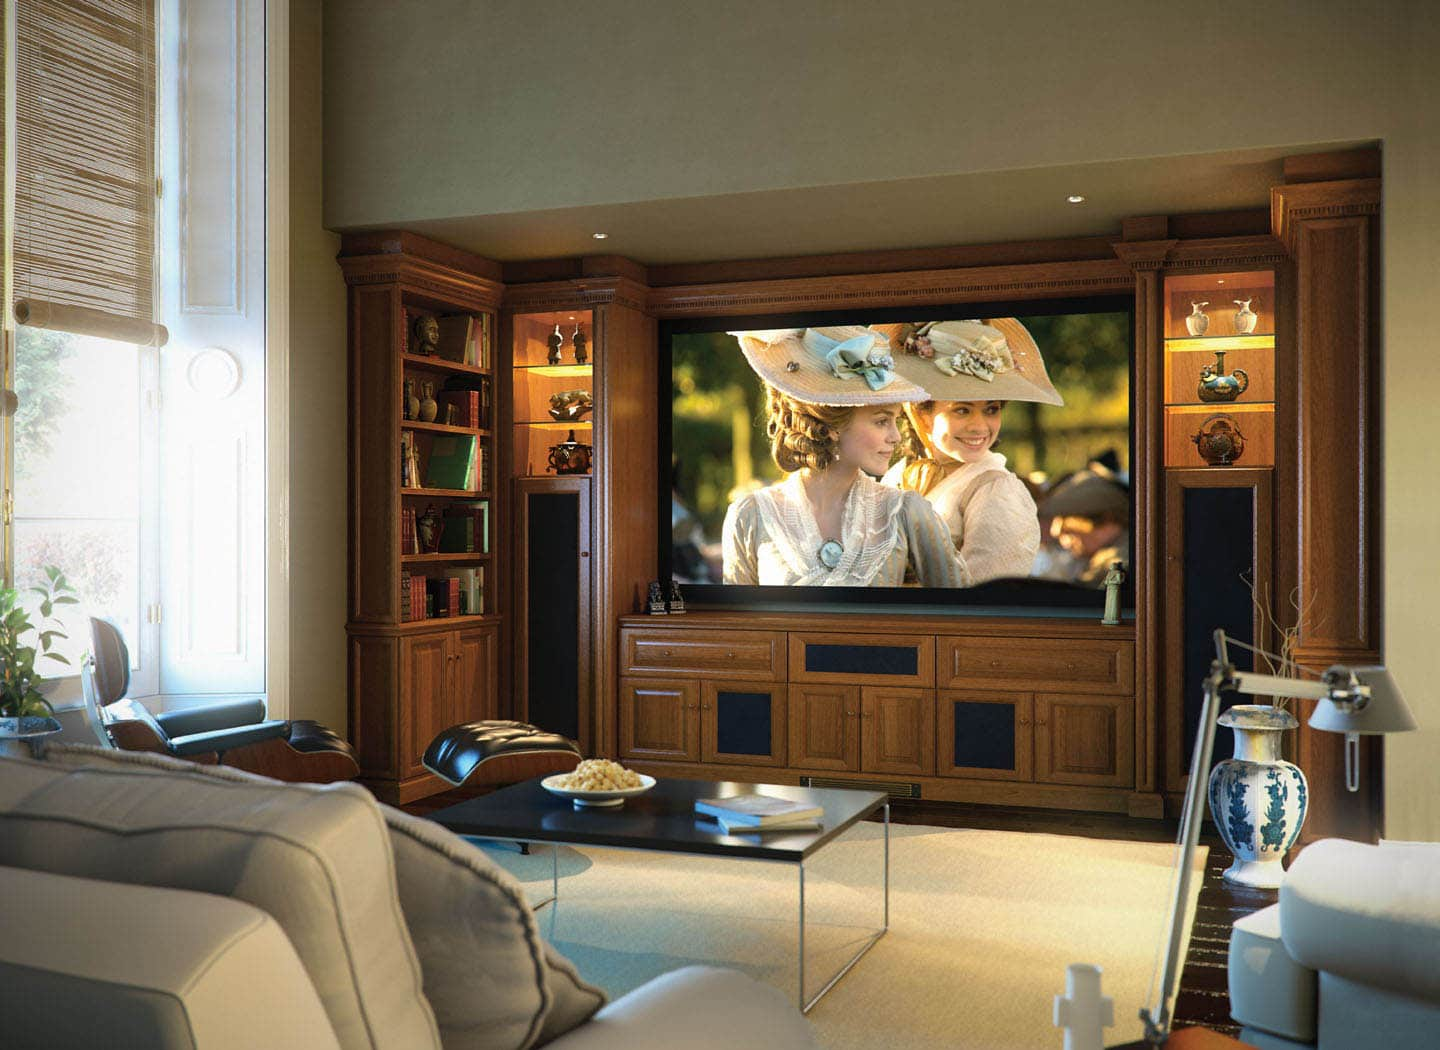 Fitted cabinets with large projection screen